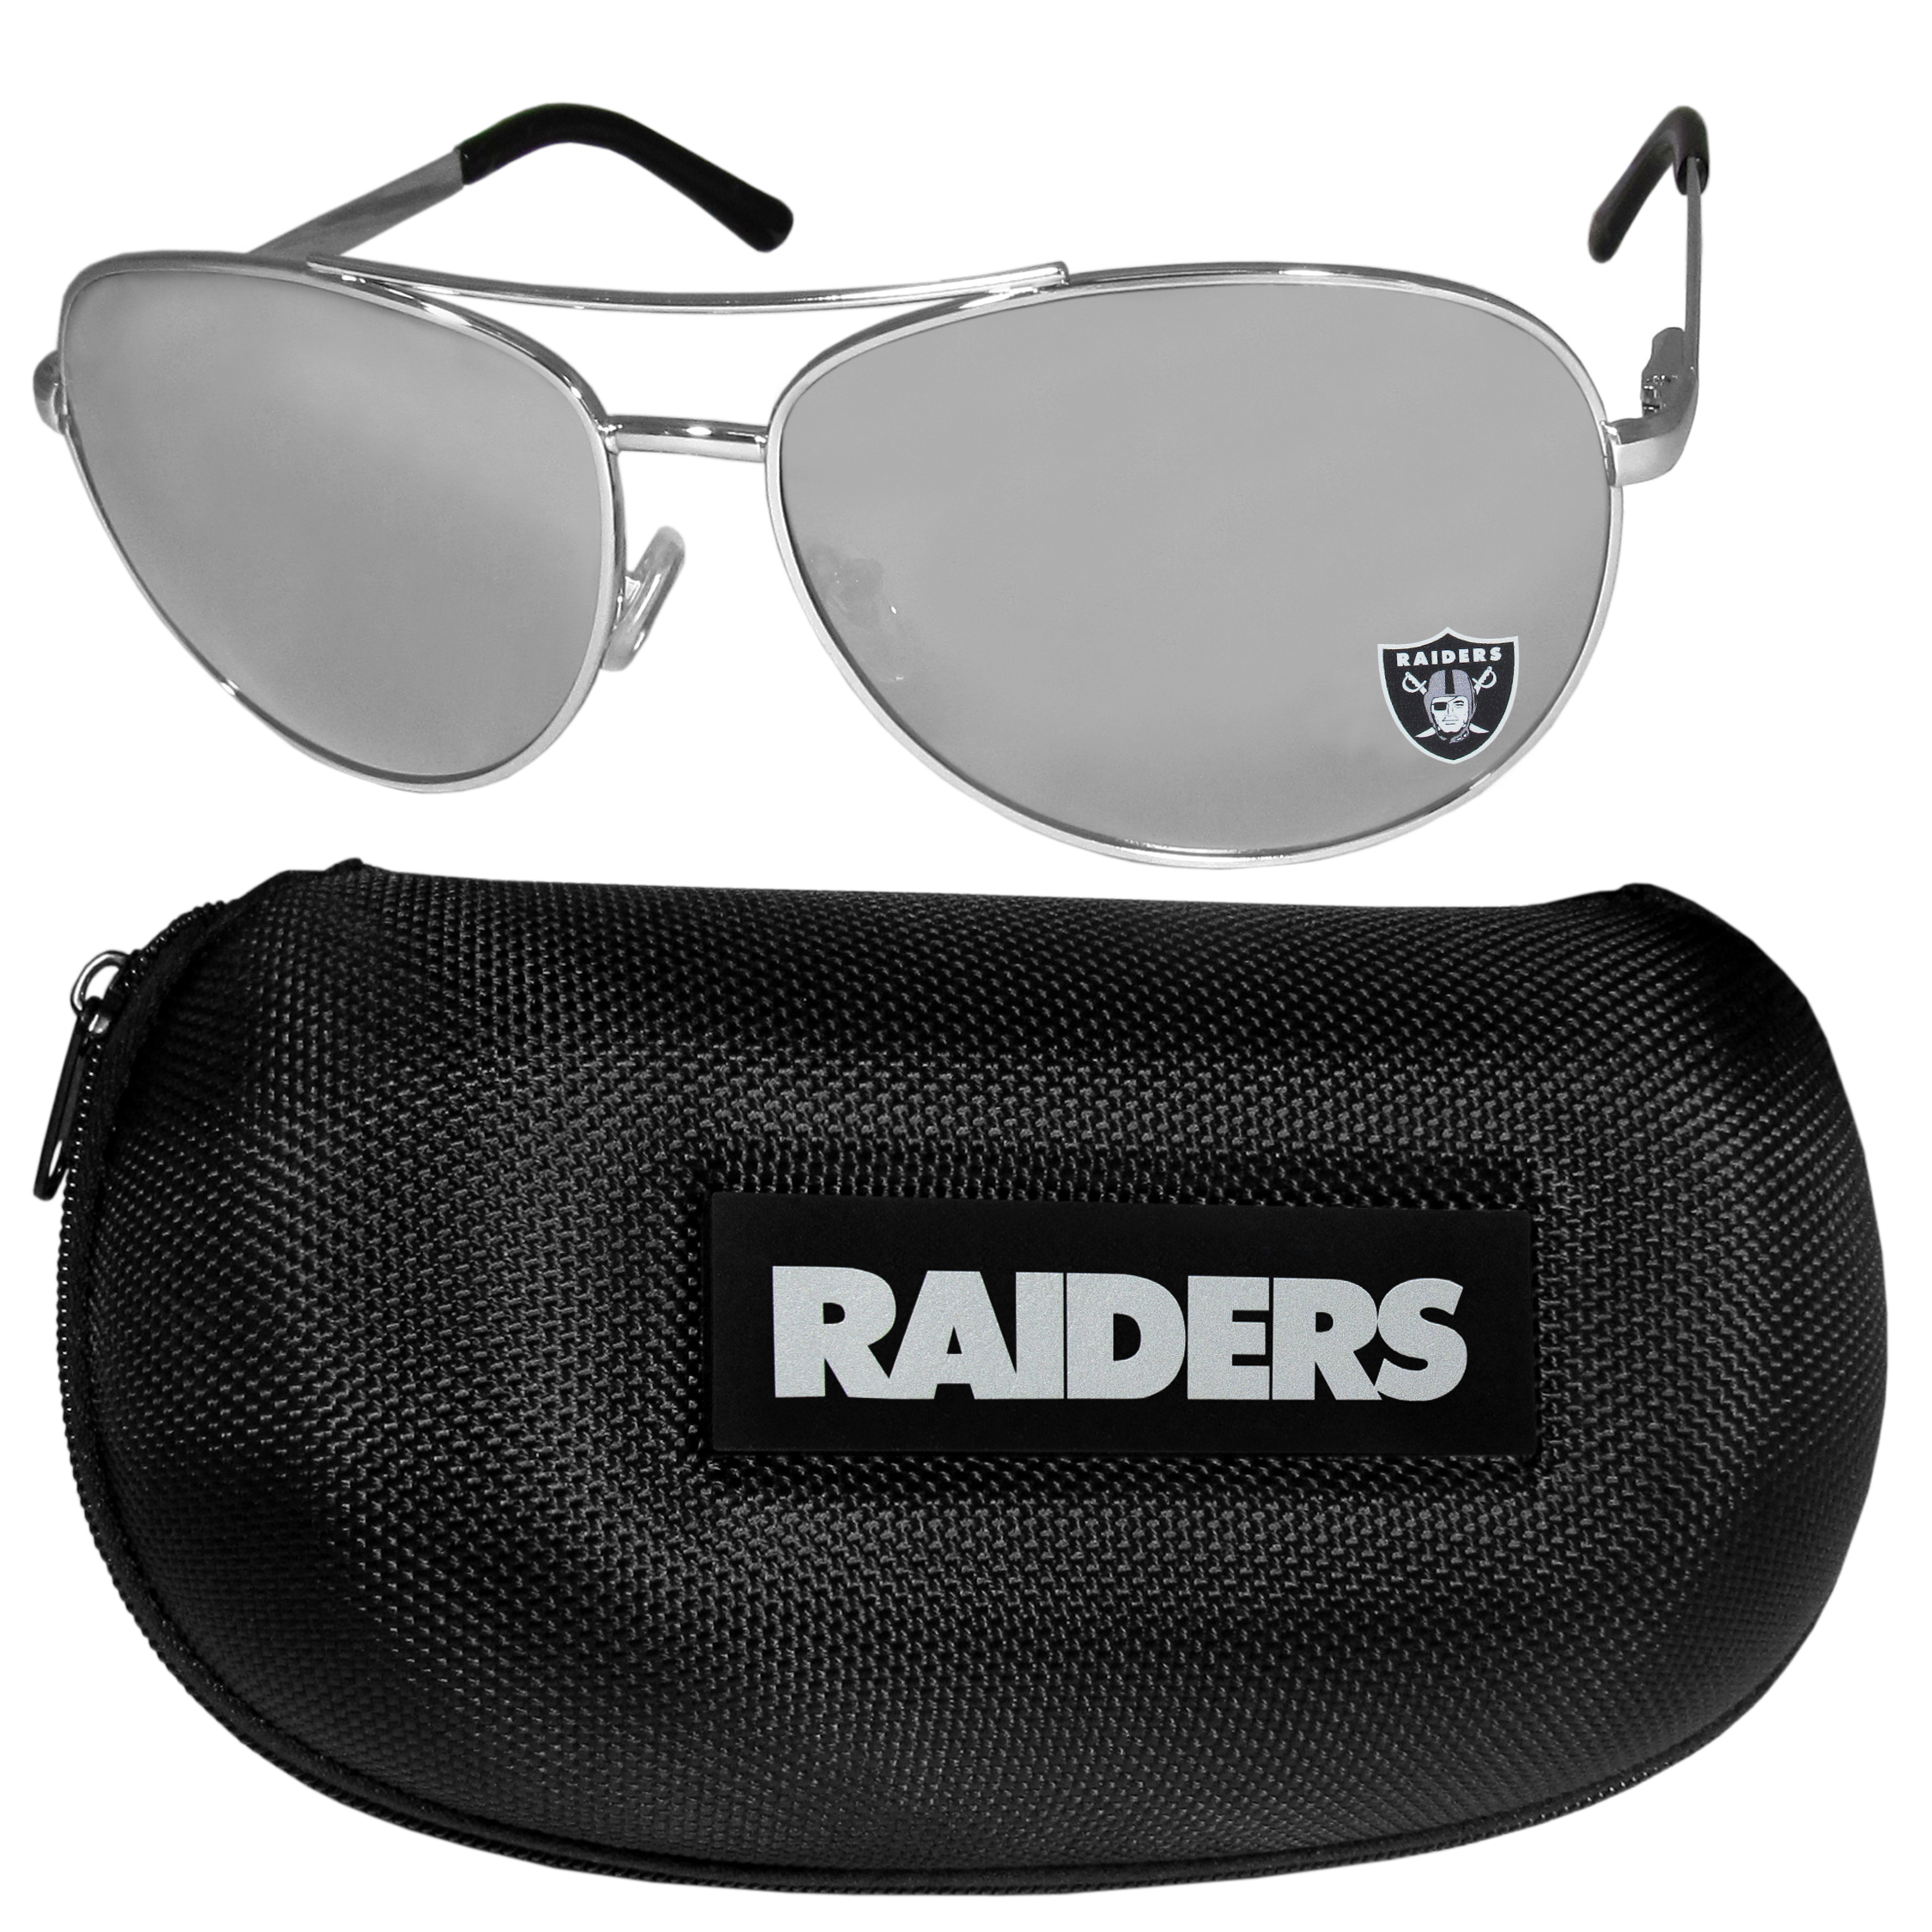 Oakland Raiders Aviator Sunglasses and Zippered Carrying Case - Aviator sunglasses are truly an iconic retro fashion statement that never goes out-of-style. Our Oakland Raiders  aviator sunglasses pair this classic look with your love of the game. The iridium coated lenses reduce glare while driving, boating, golfing and their 100% UVA/UVB rating provides you with the maximum UV protection for all your outdoor activities. A millennial favorite, these affordable designer frames are the perfect eyewear accessory for a sports fan that is looking for high-quality at an affordable price. The durable, flex hinged frames are tough enough for hiking and camping or if you prefer sun bathing by the pool or on the beach these shades will really stand the test of time. The sunglasses come with a hard shell zippered case which has a large team logo on the lid that will make even the most die-hard fan proud!